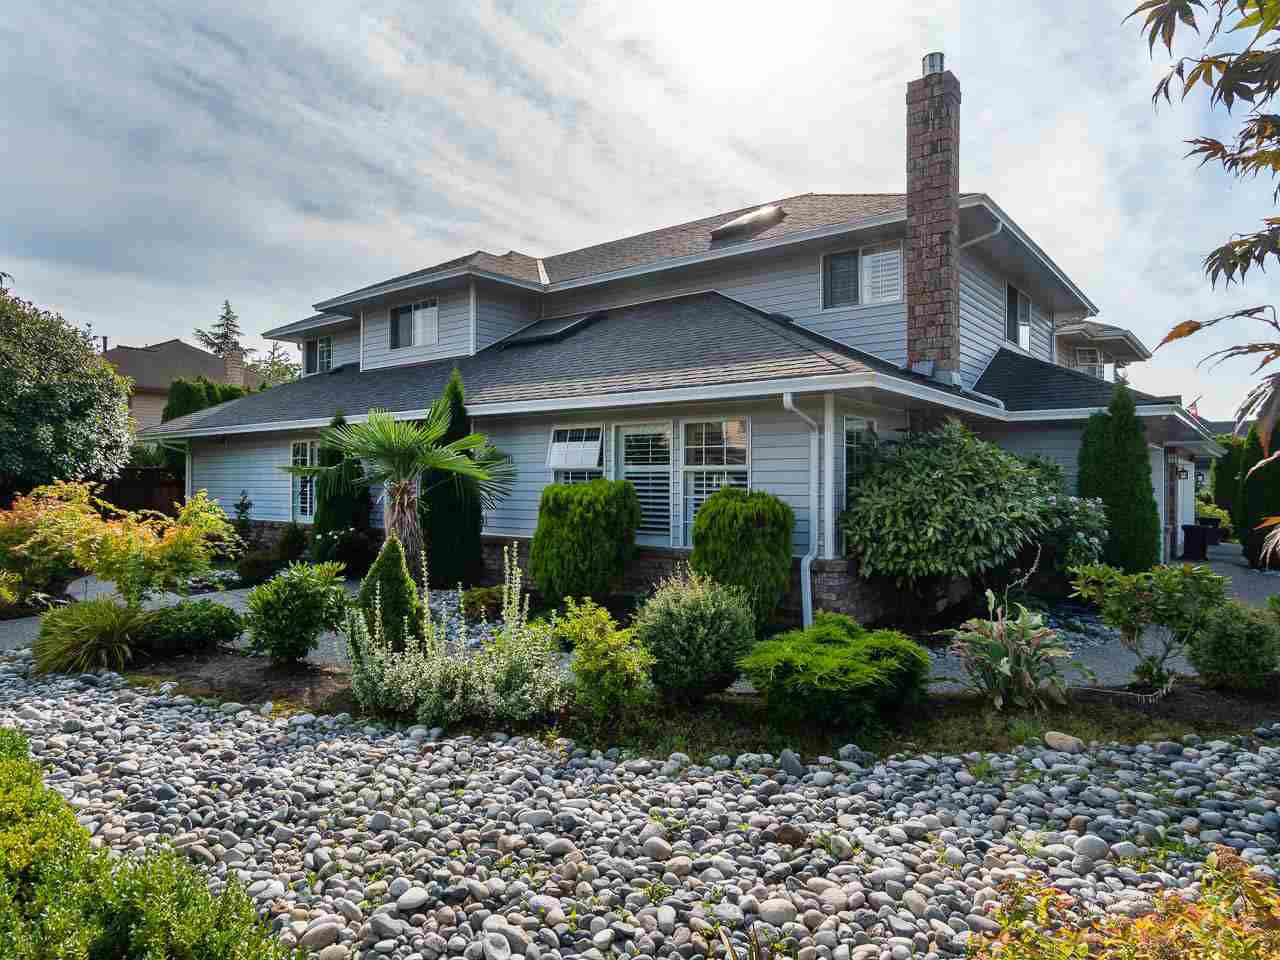 Main Photo: 12211 PHOENIX Drive in Richmond: Steveston South House for sale : MLS®# R2302657